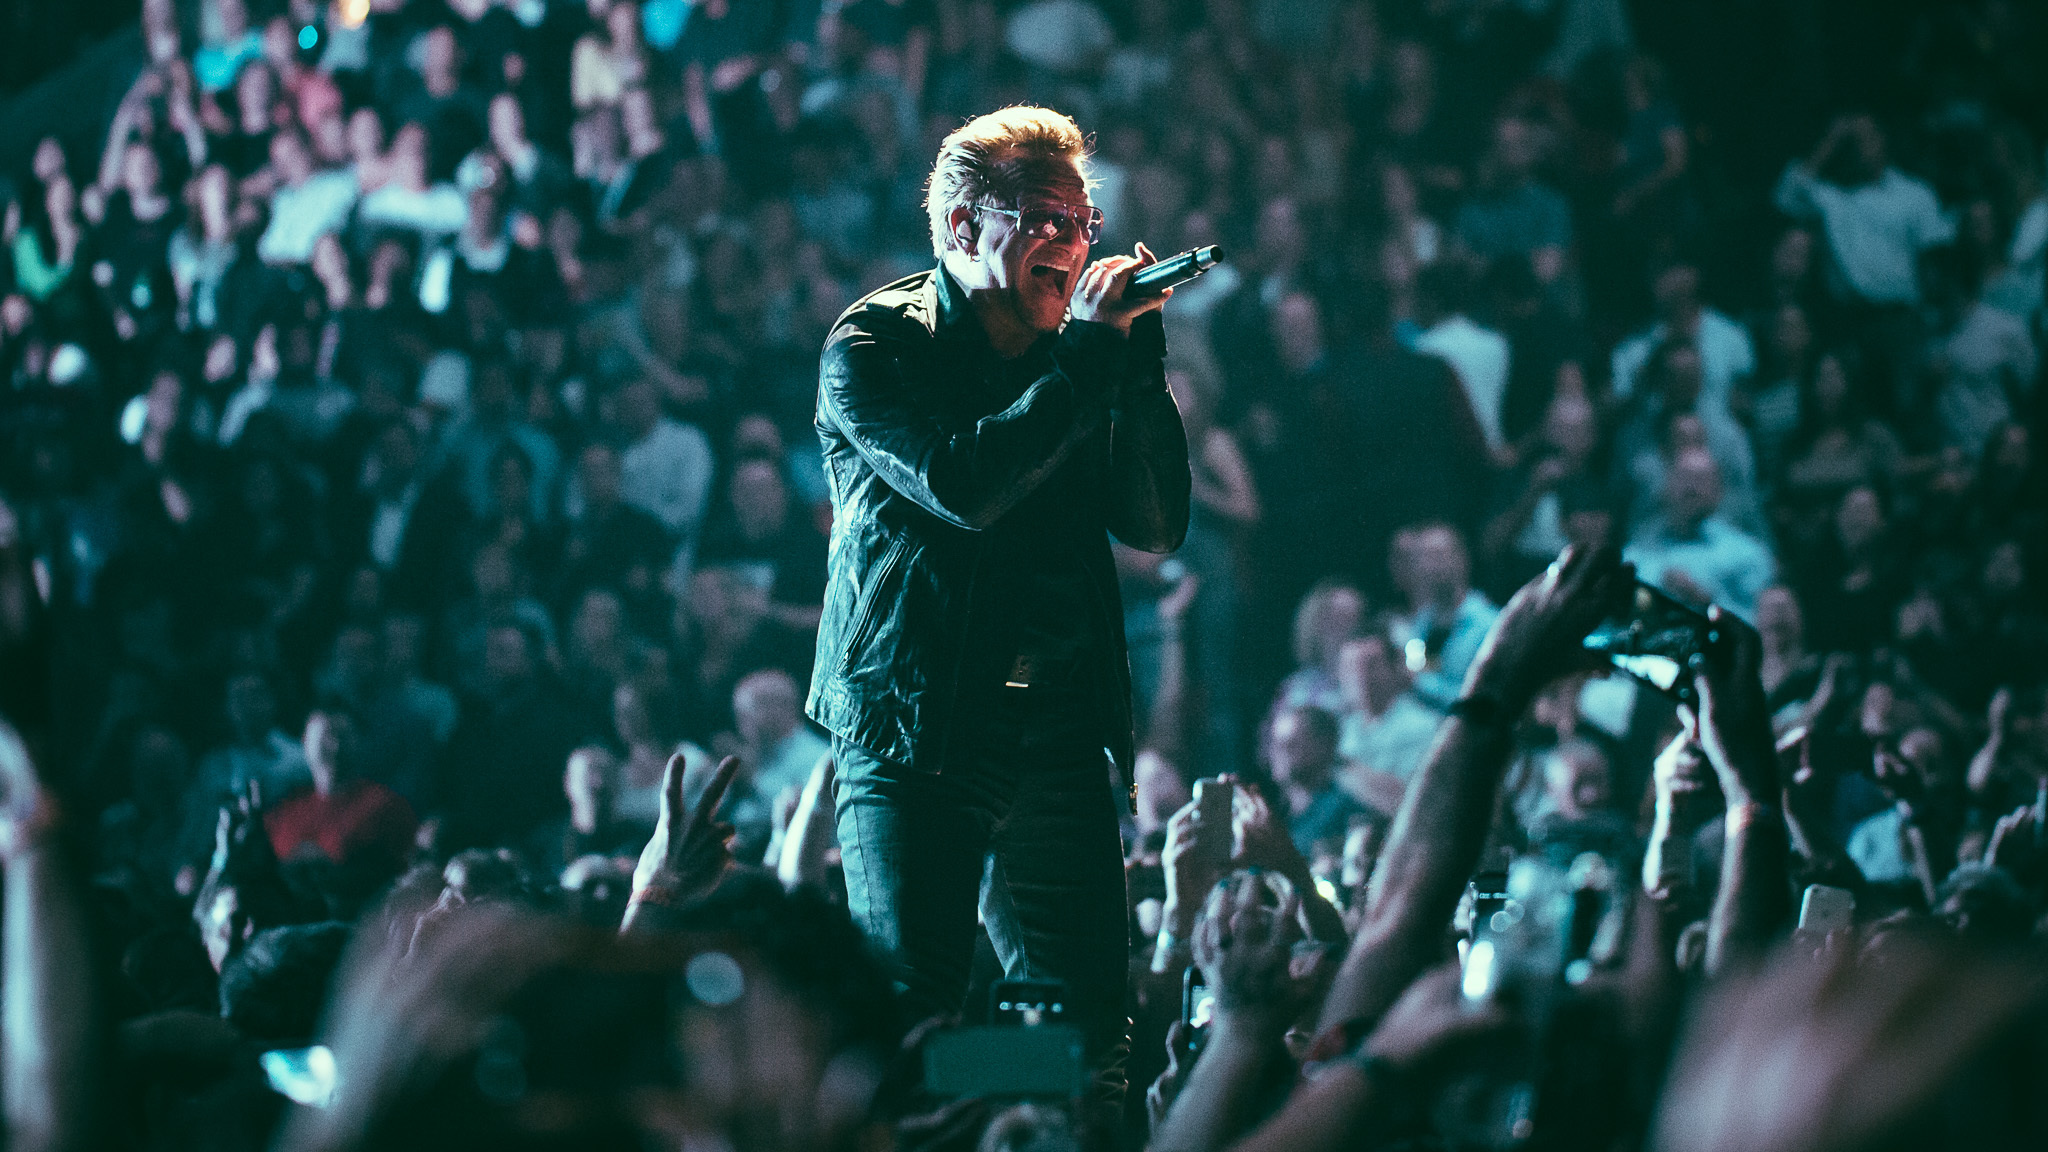 U2 and Lollapalooza are among the hottest summer concerts